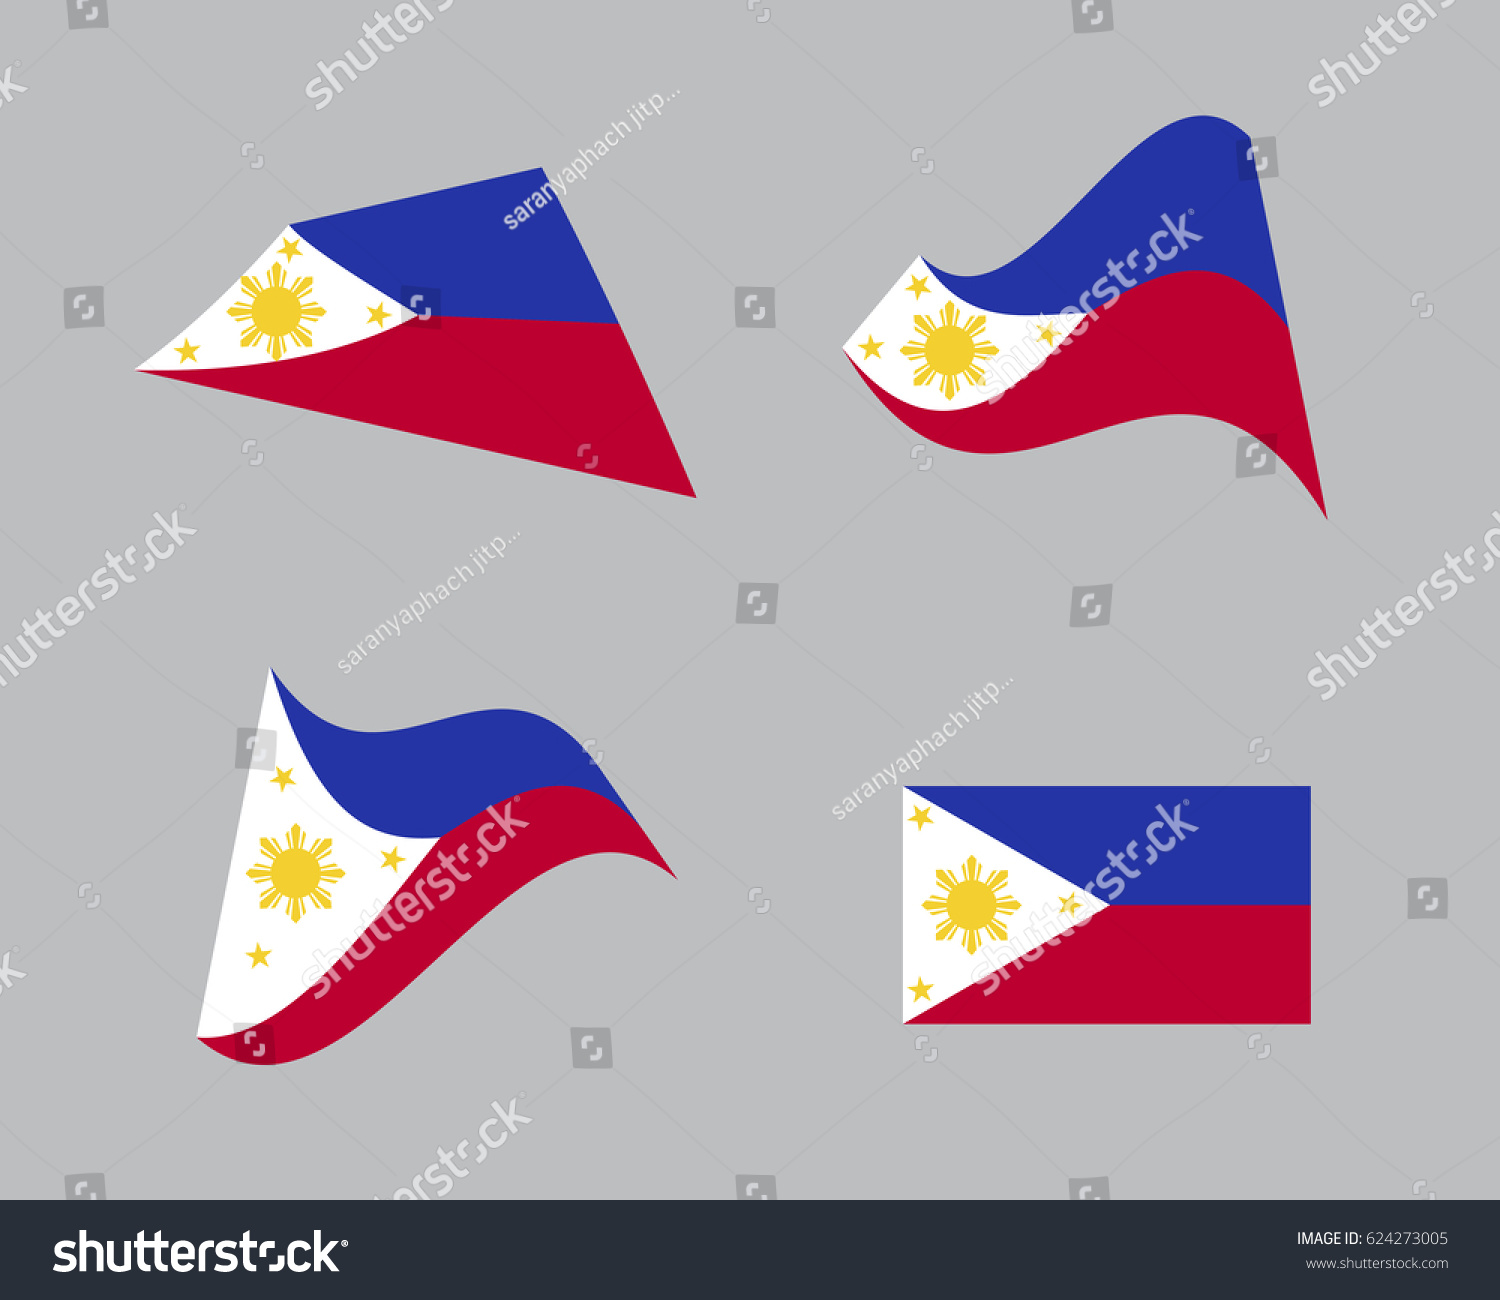 Flag philippines national country symbol illustration stock vector flag of philippines national country symbol illustration buycottarizona Images